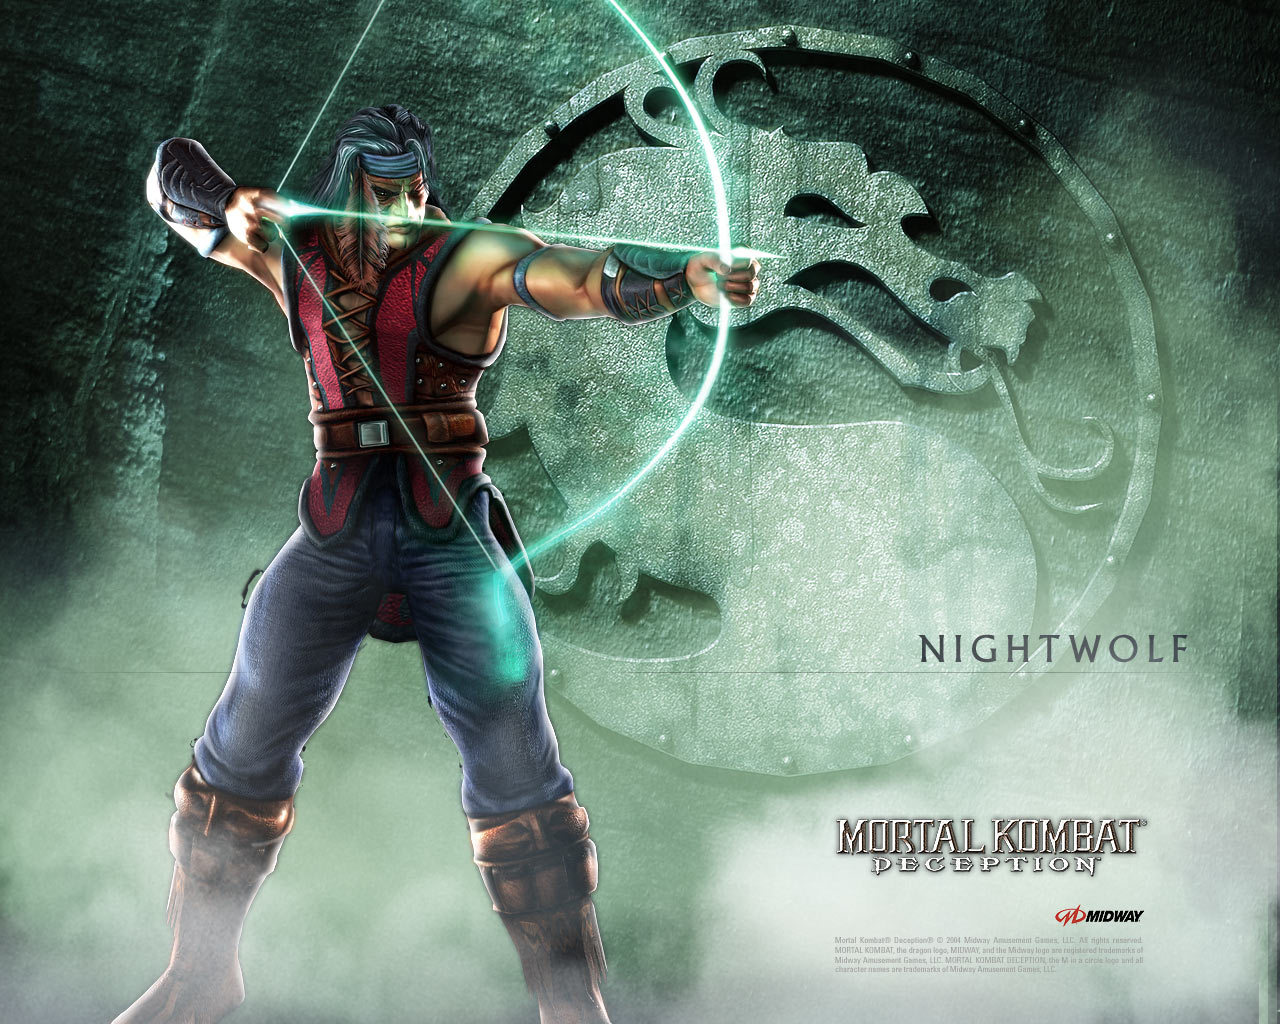 mortal kombat nightwolf logo HD Wallpaper